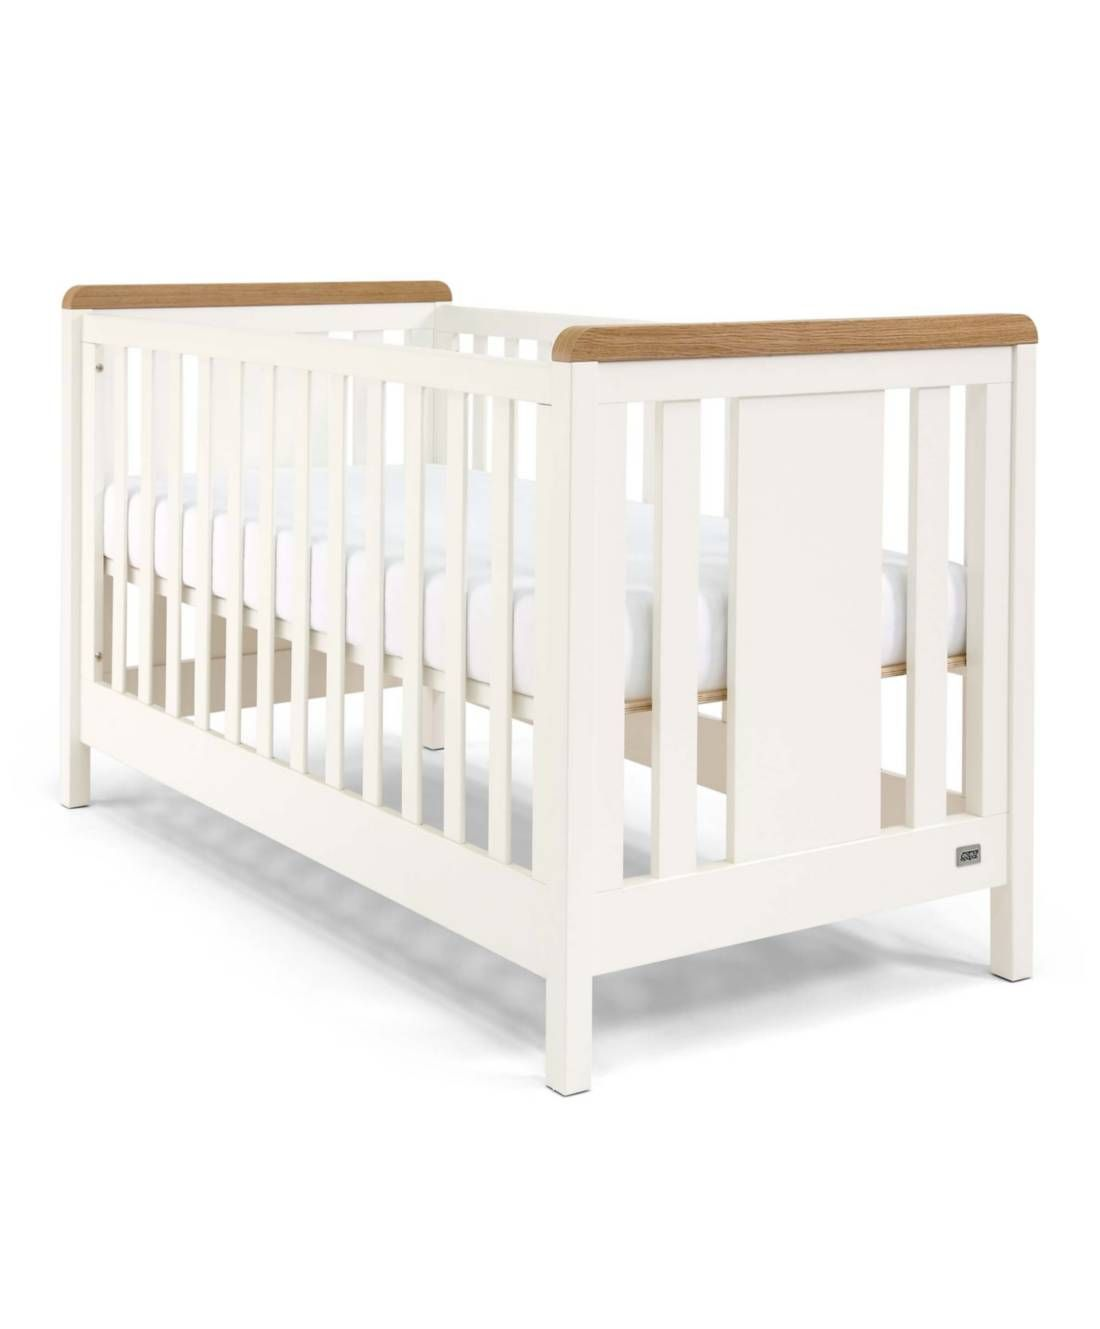 494bdb3ddf4 Kingston Cot/Day/Toddler Bed - White/Oak | For the Home | Toddler ...